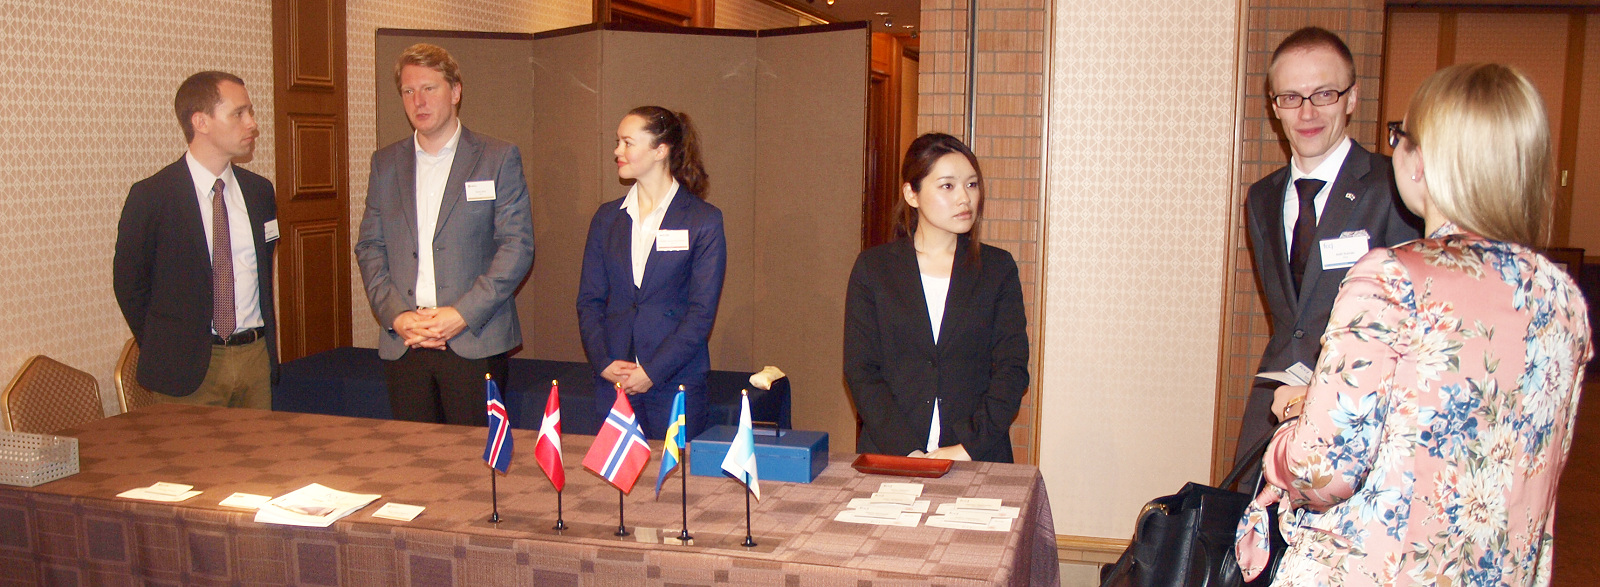 The reception desk for the five Nordic Chambers. From left: ISCCJ Executive Director Halldor Olafsson, SCCJ General Manager Martin Koos, NCCJ Executive Anette Yamamoto-Hansen, Natsuko Kunnas and new FCCJ Executive Director Antti Kunnas.